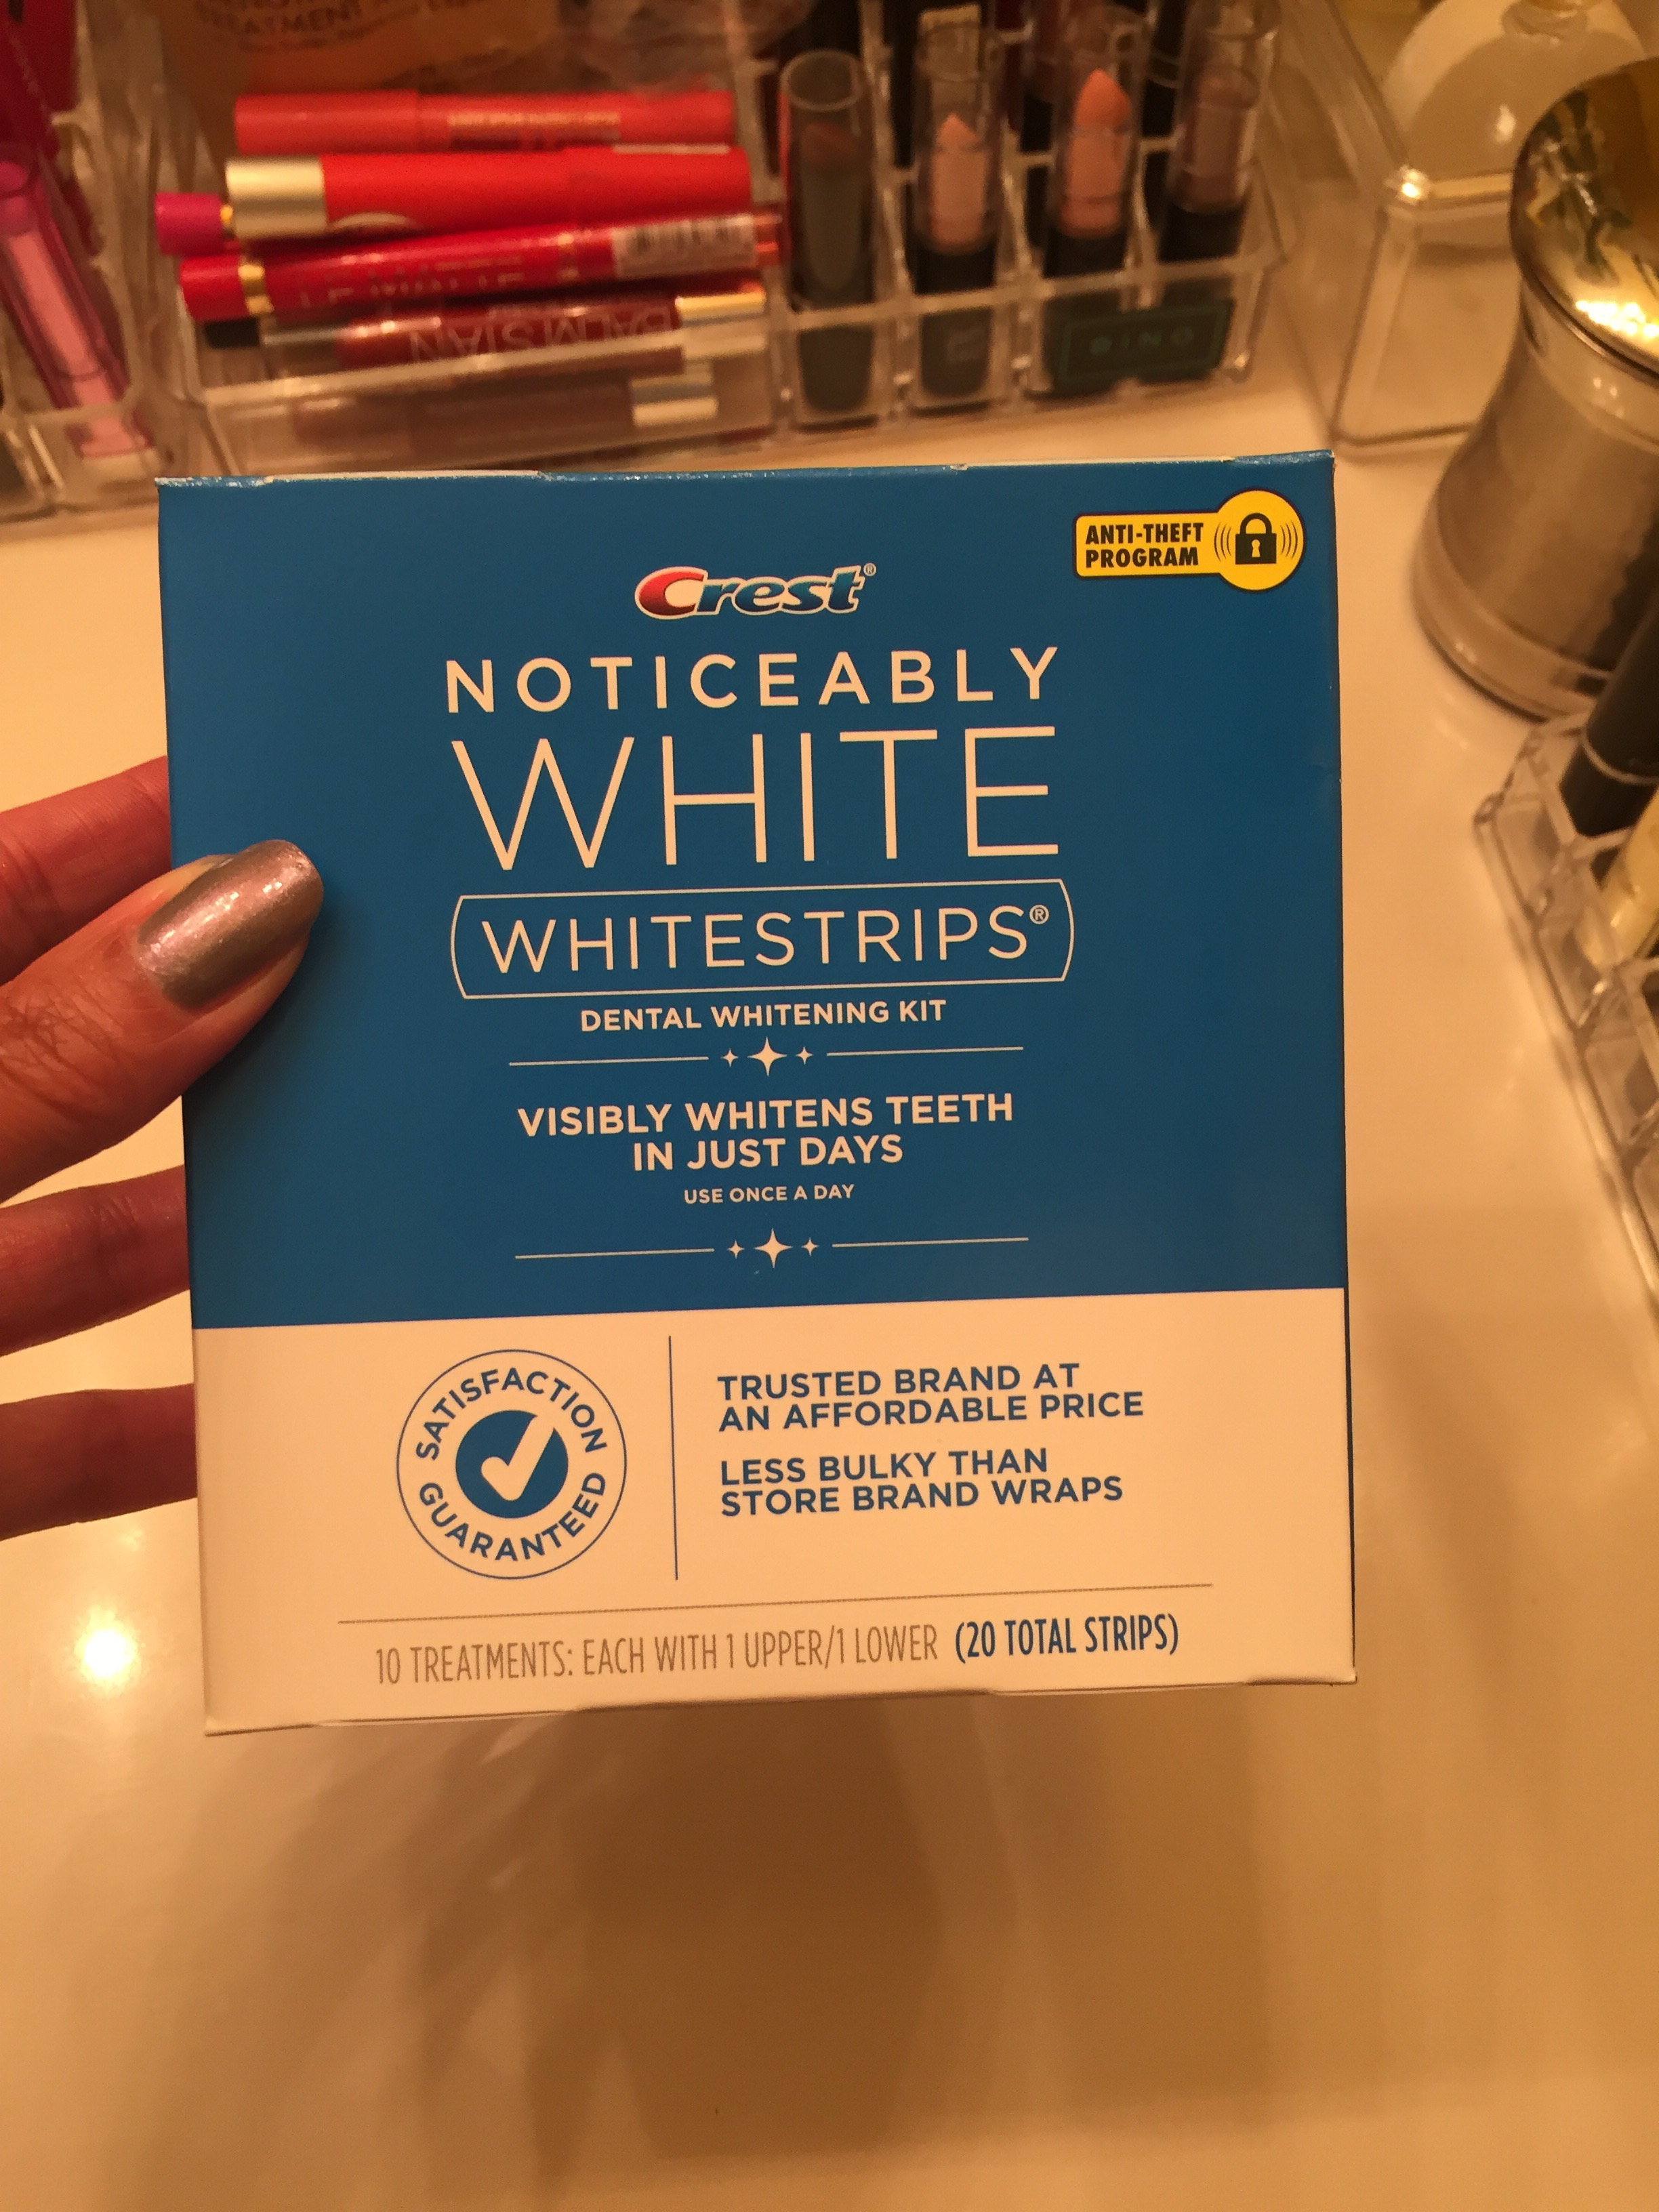 Empty box report Crest noticeably white whitestrips Being Kindra